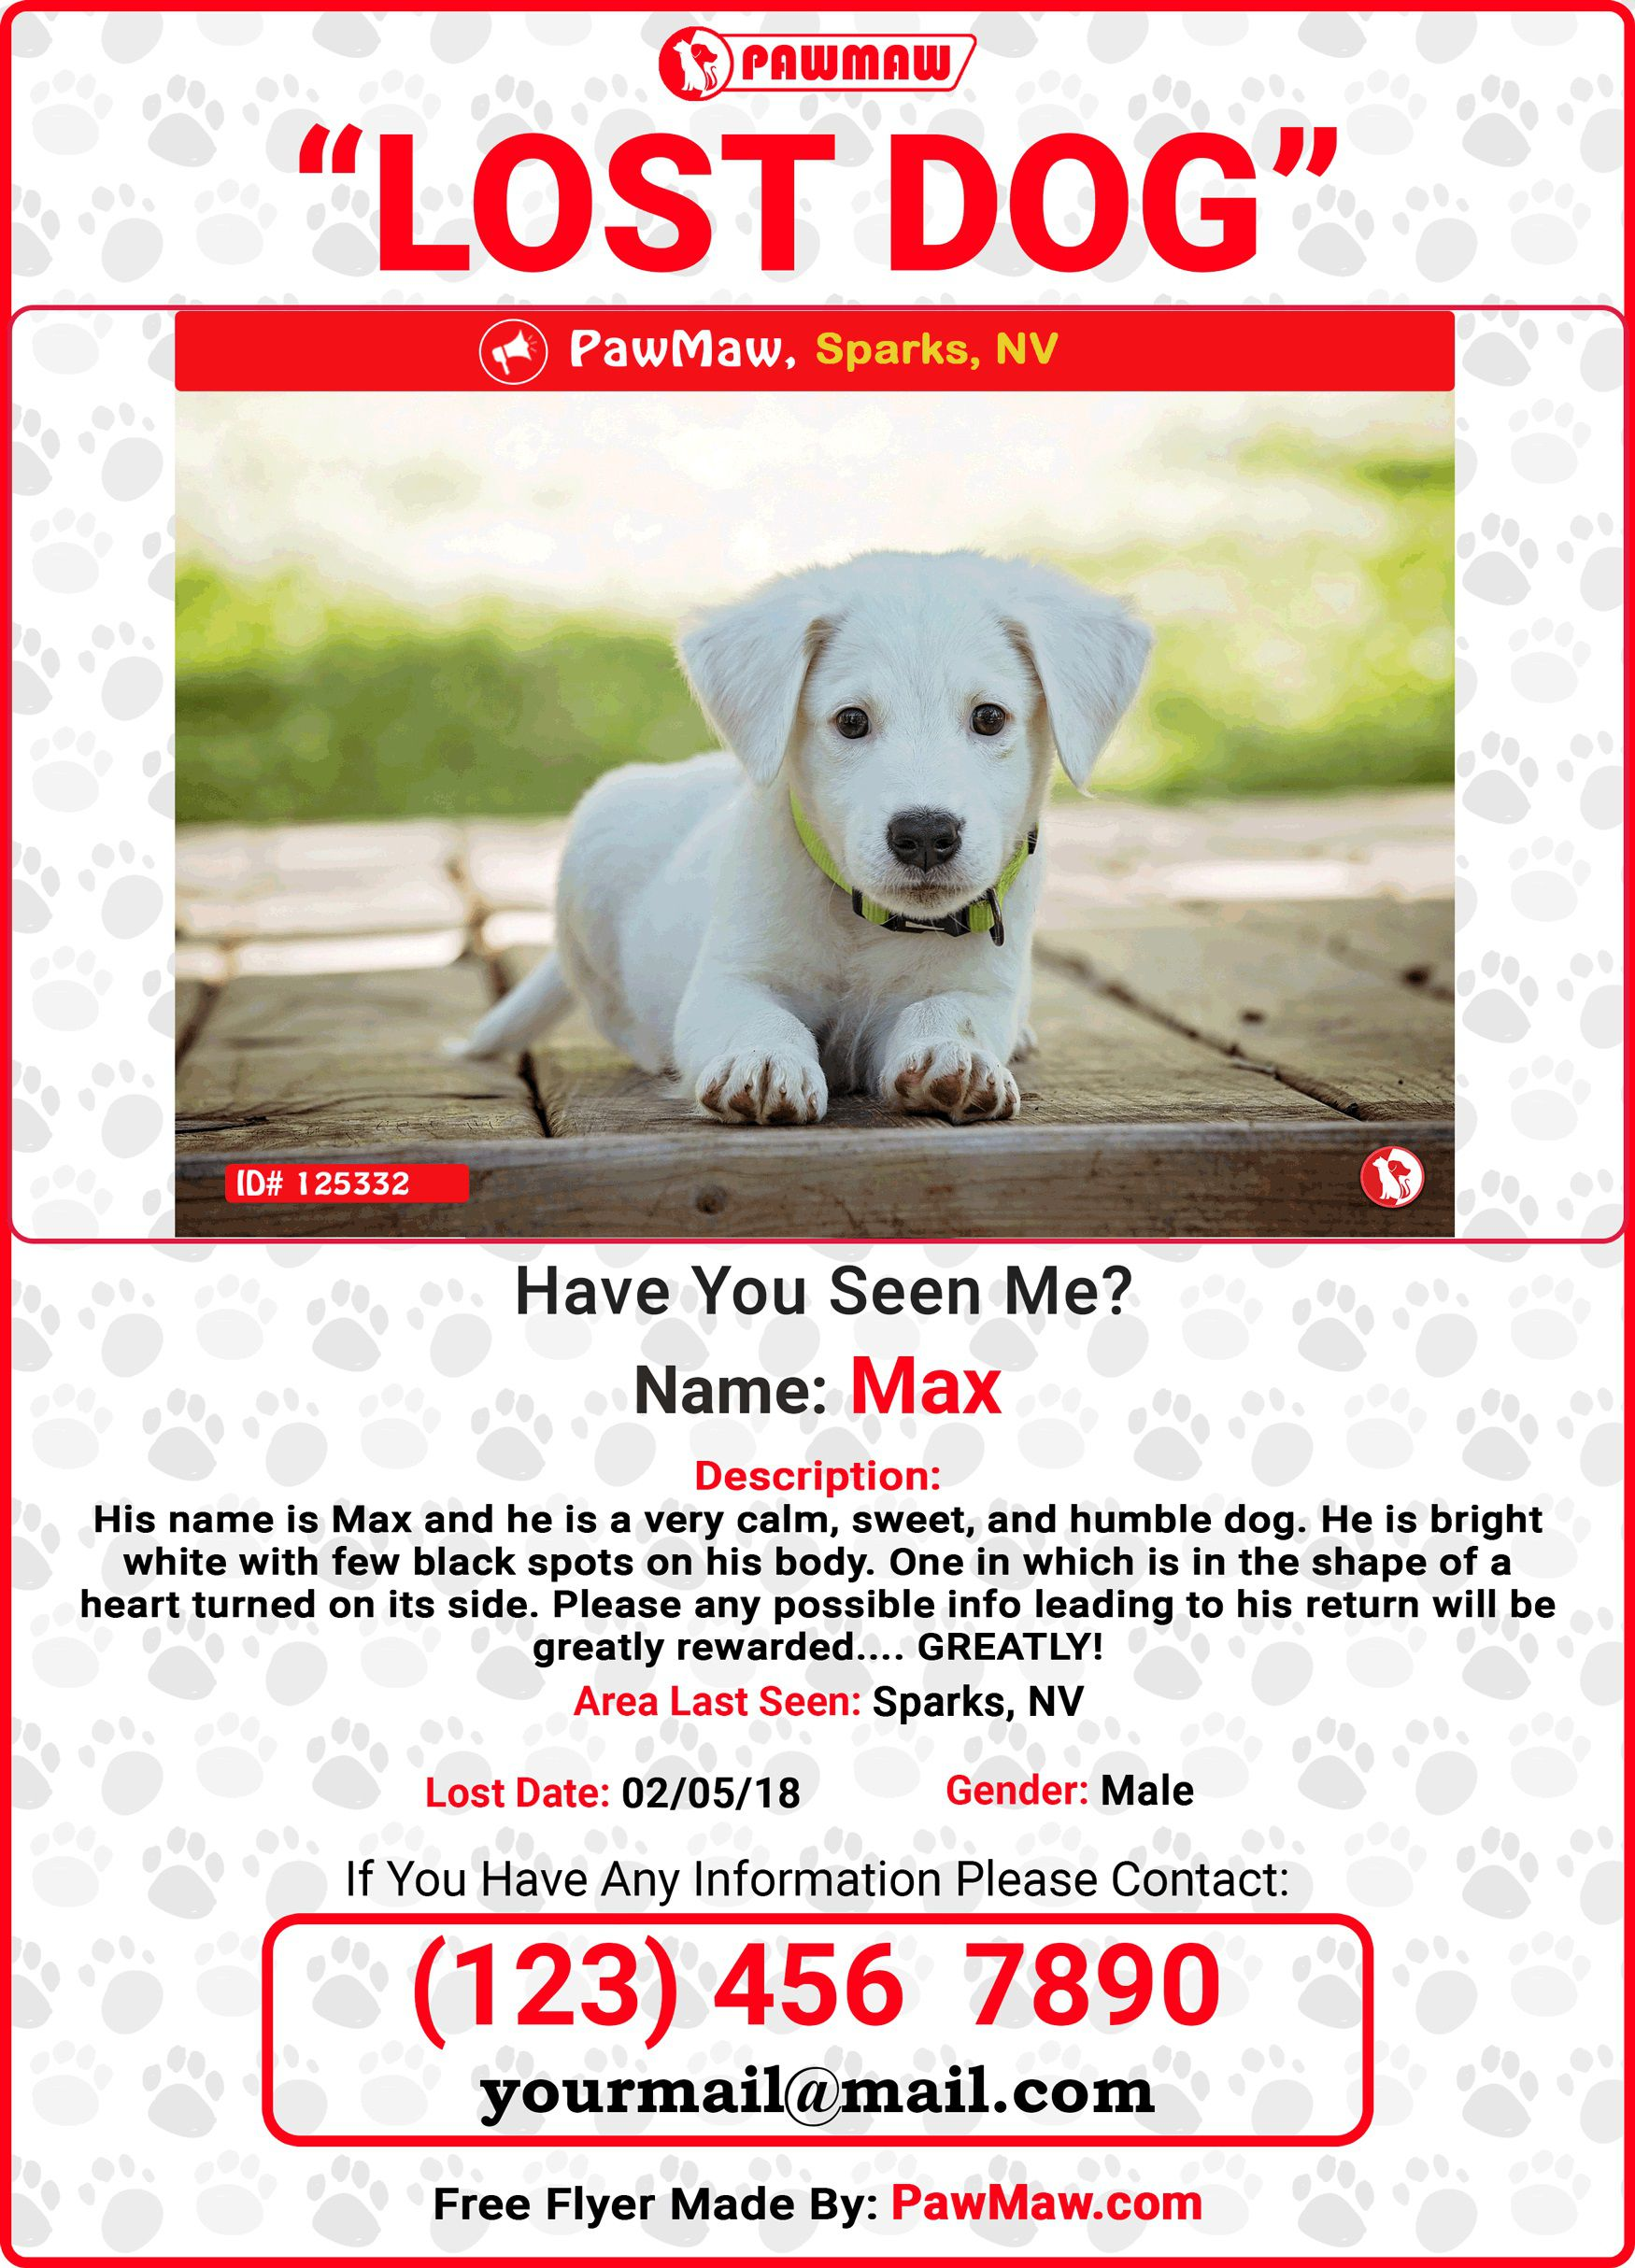 005 Unforgettable Lost Dog Flyer Template Sample  Printable Missing PetFull